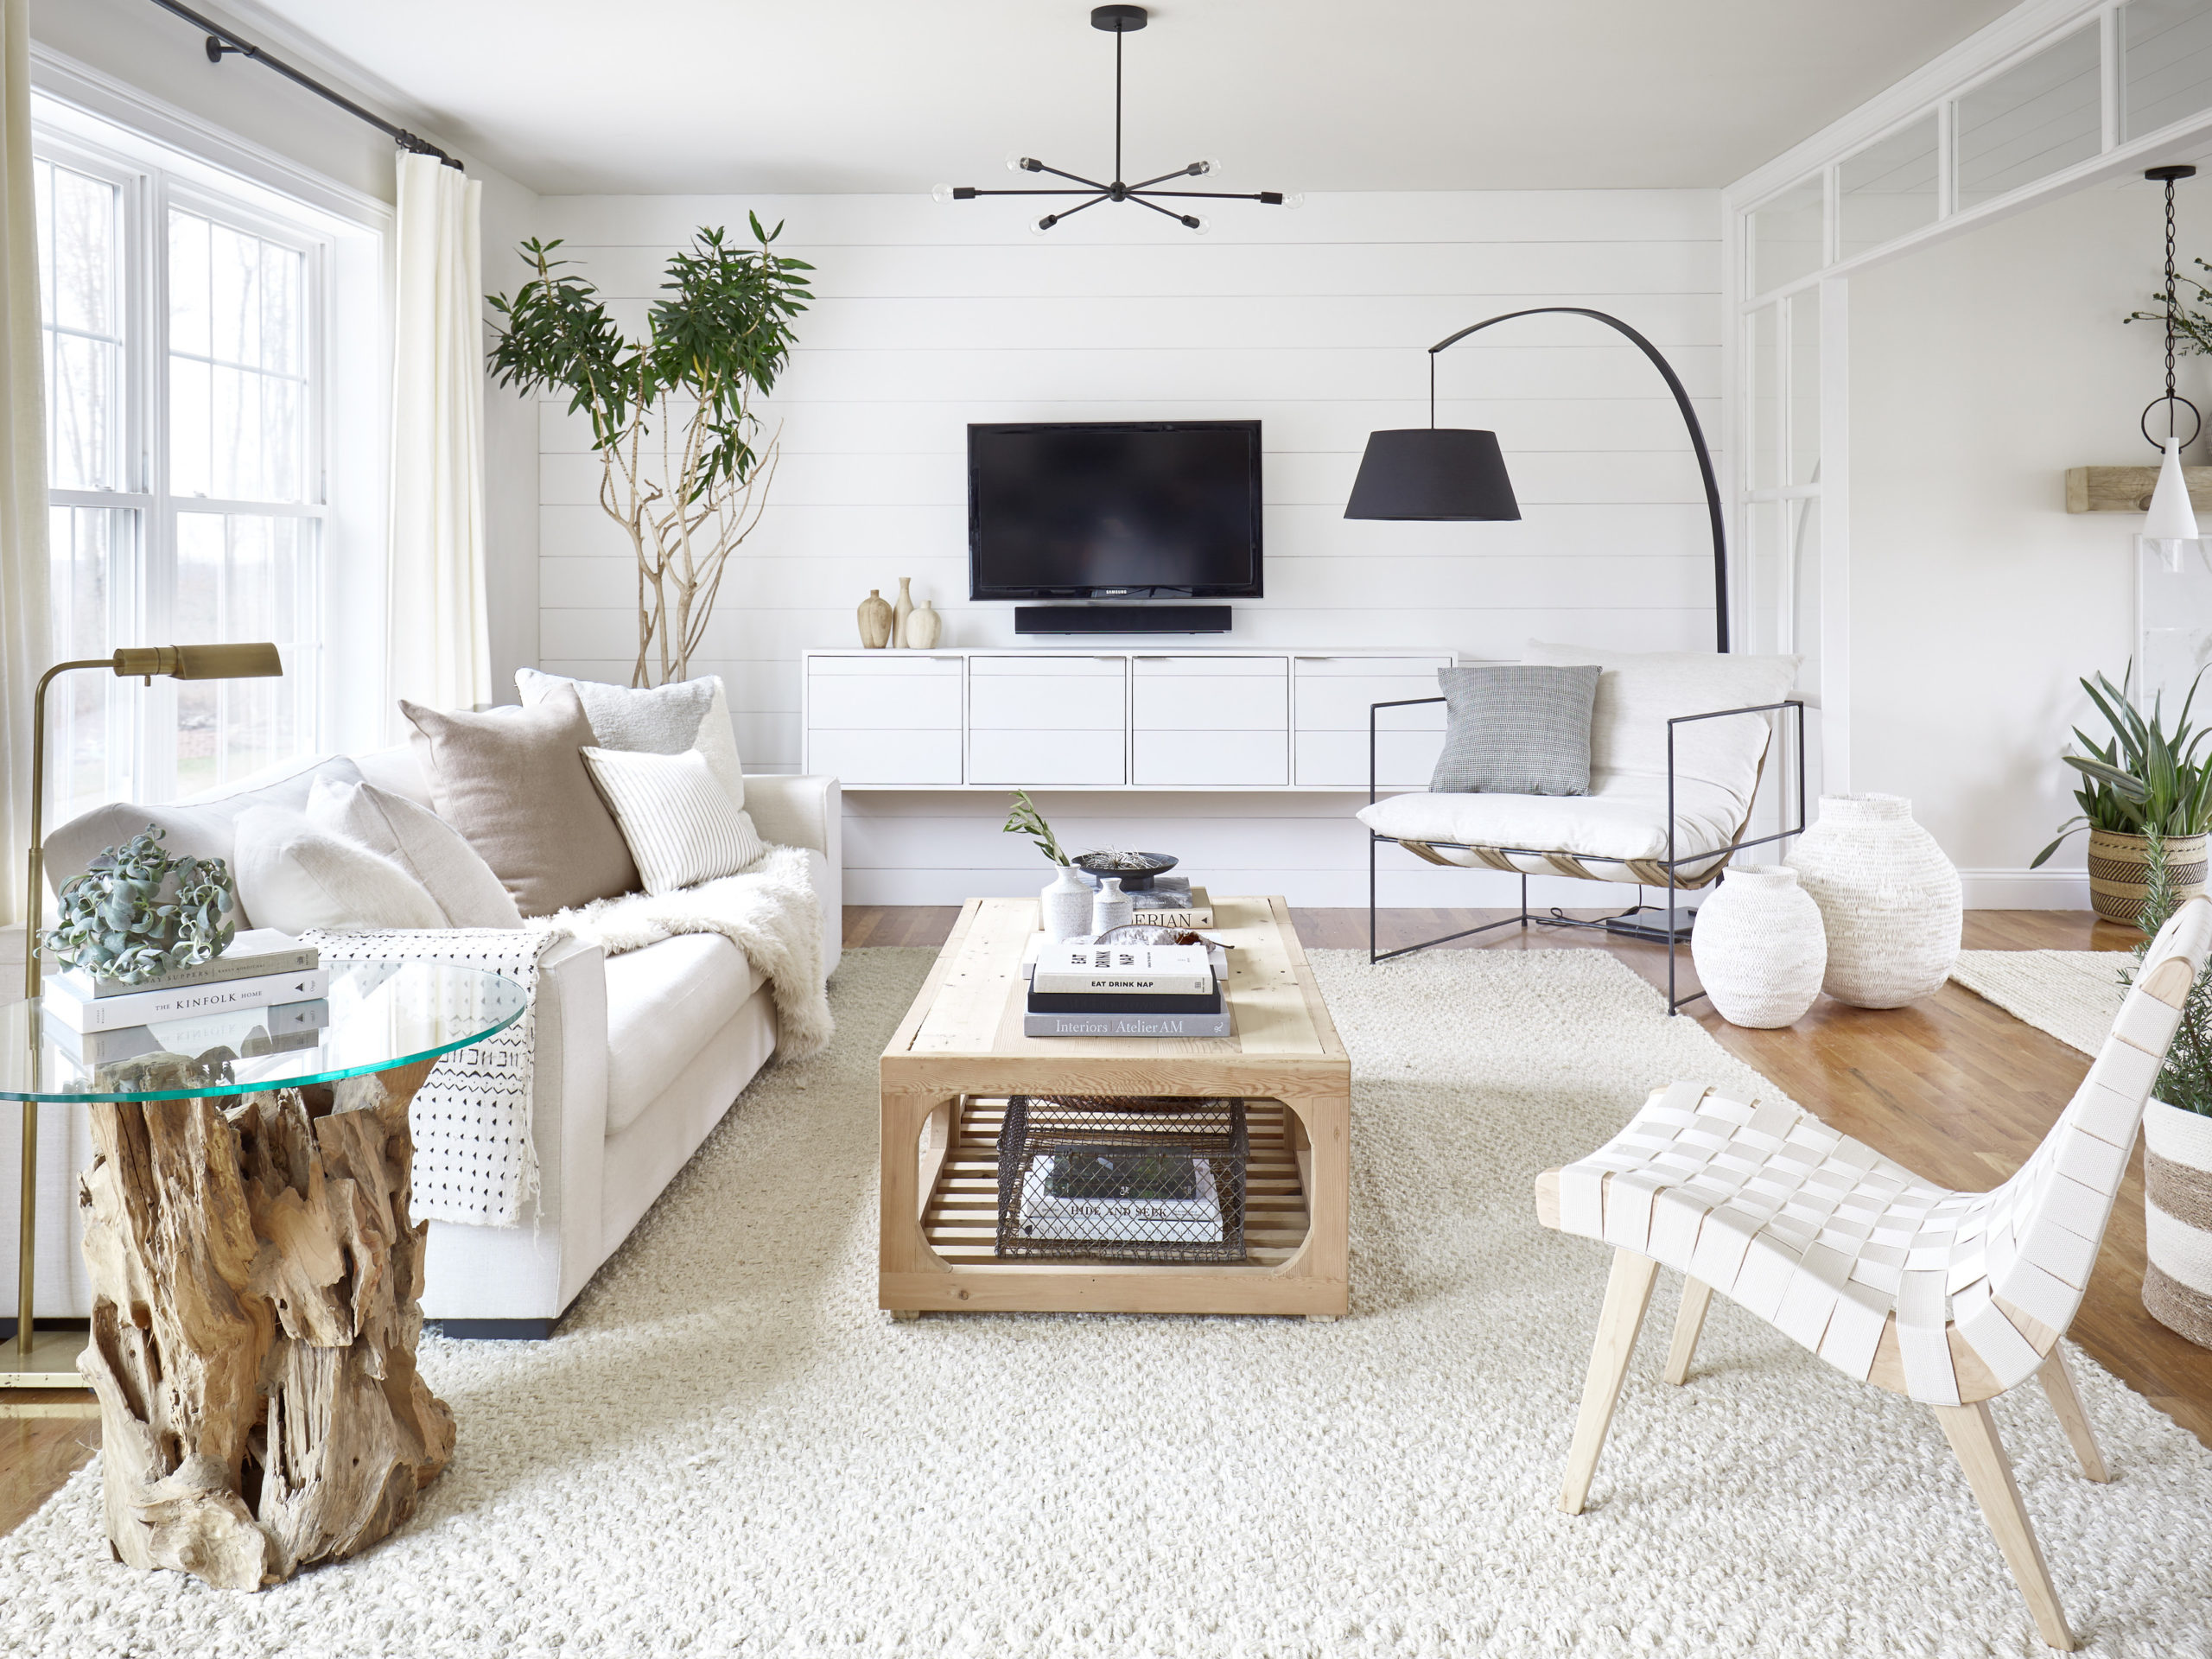 Arrange Furniture On The Rug In The Room Accordingly